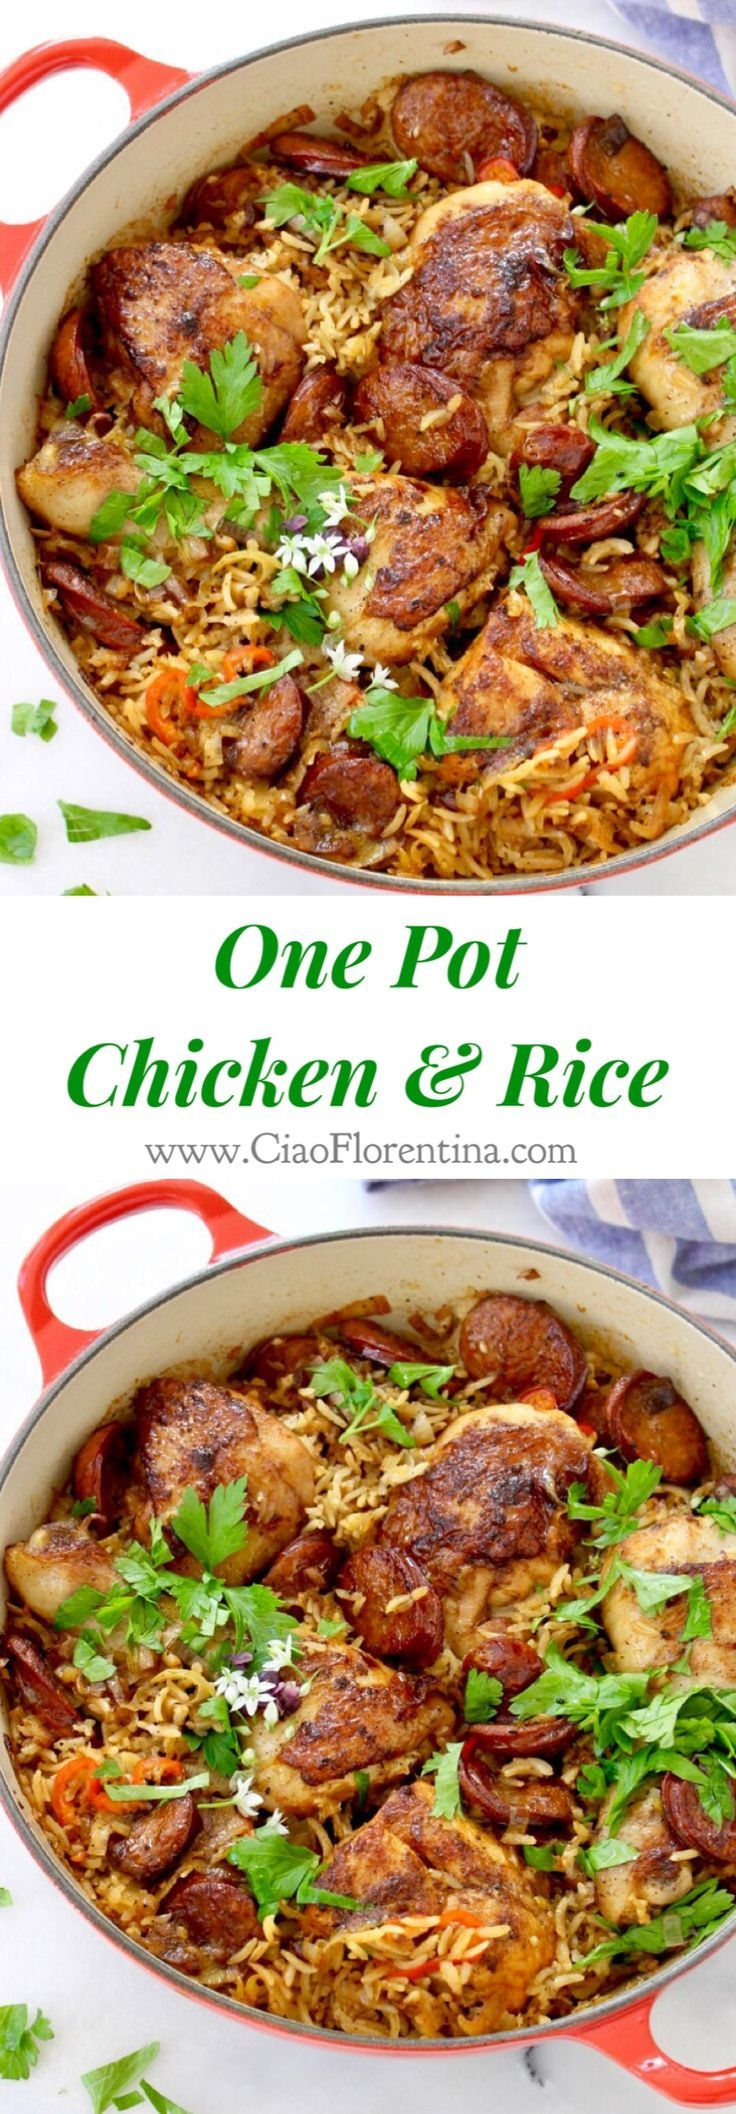 chicken and brown rice recipe a one pot healthy meal old world one pot ...